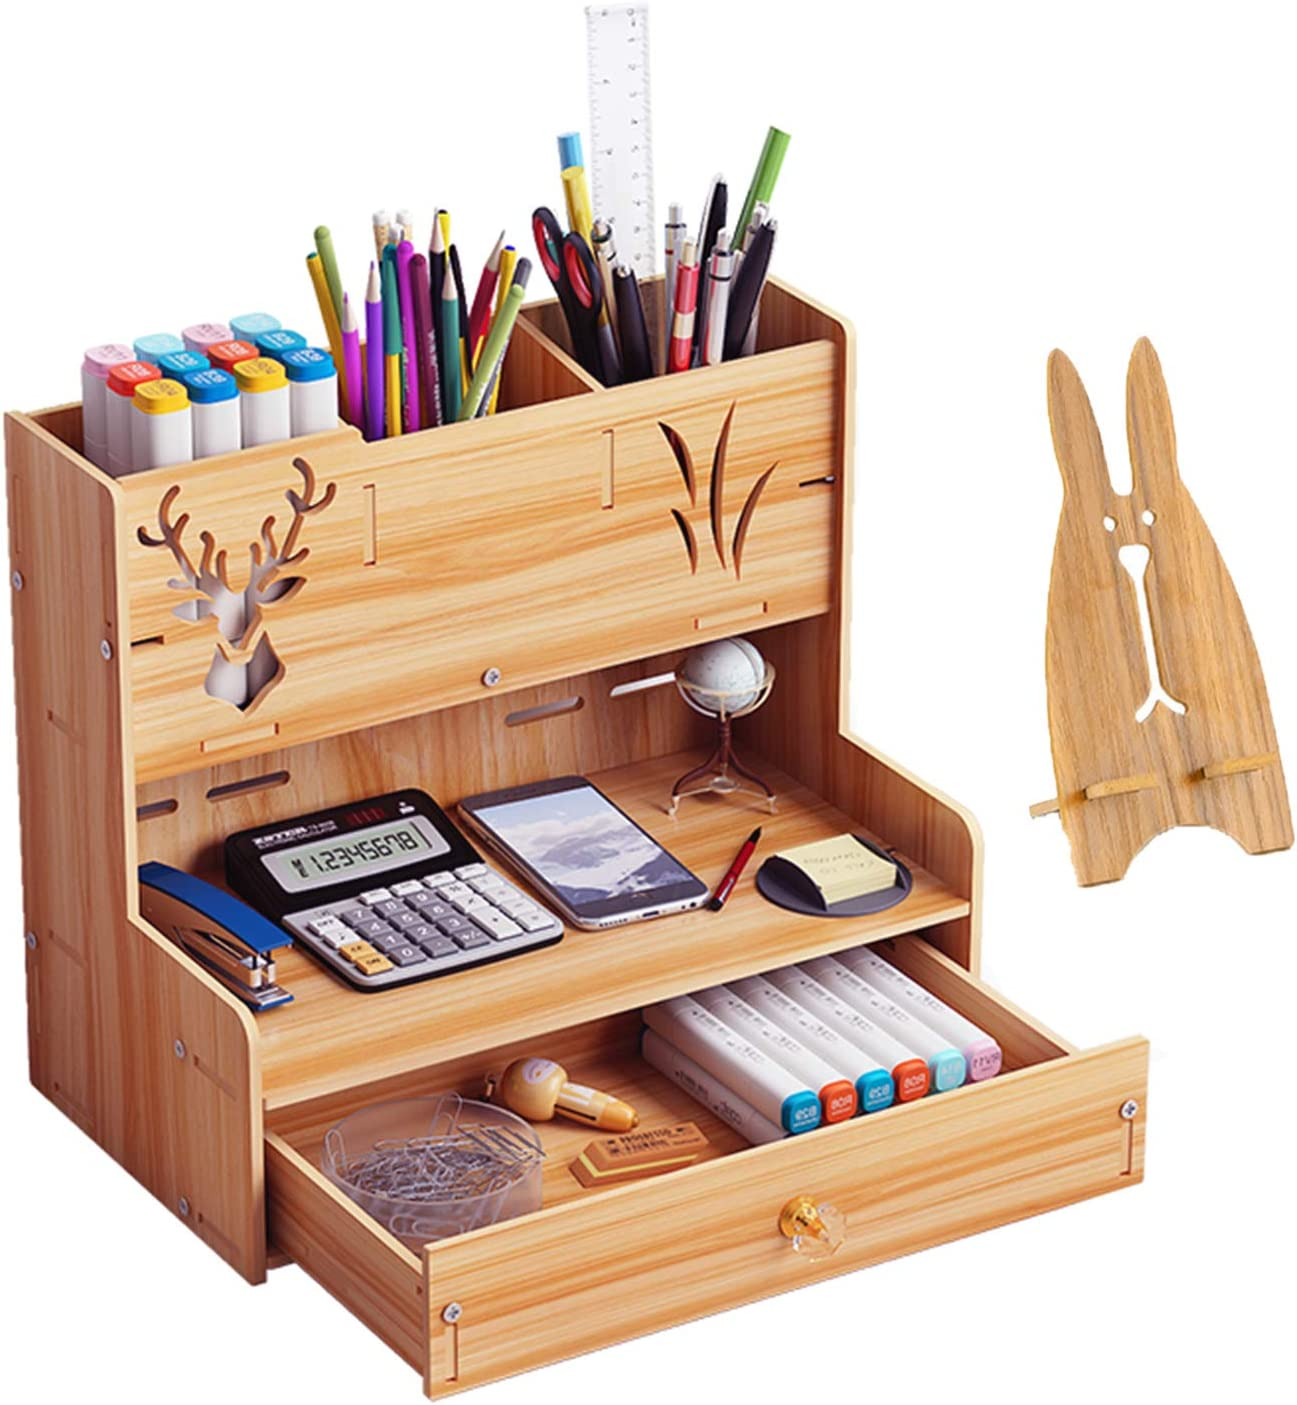 Marbrasse Wooden Desk Organizer, Multi-Functional DIY Pen Holder Box, Desktop Stationary, Easy Assembly, Home Office Supply Storage Rack with Drawer (B14-Cherry Color)